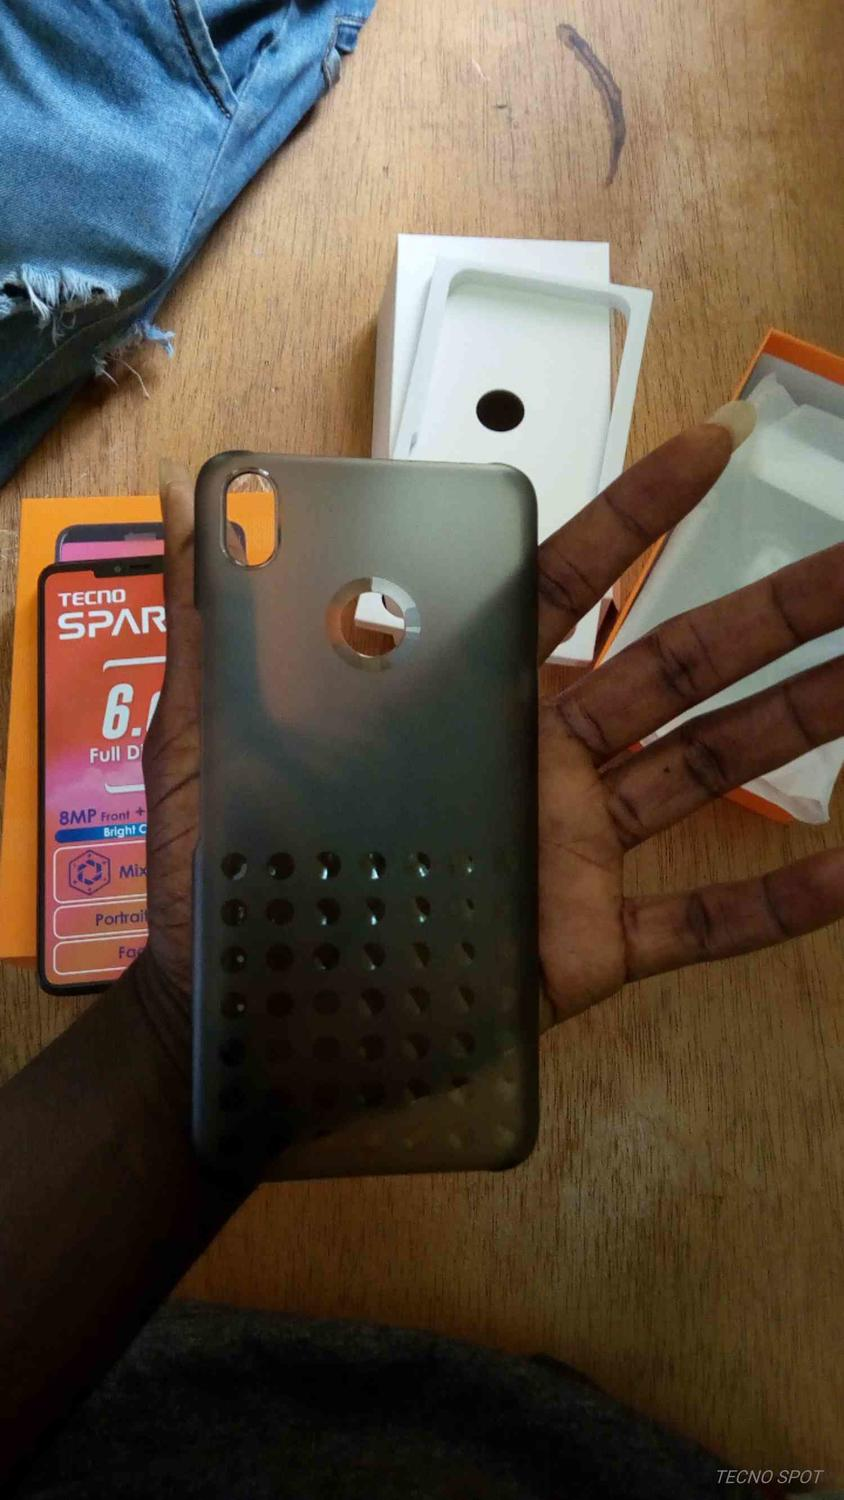 Ambient Light Sensor >> TECNO SPARK 2 UNBOXING AND FIRST IMPRESSION. - TECNO MOBILE COMMUNITY OFFICIAL FORUM